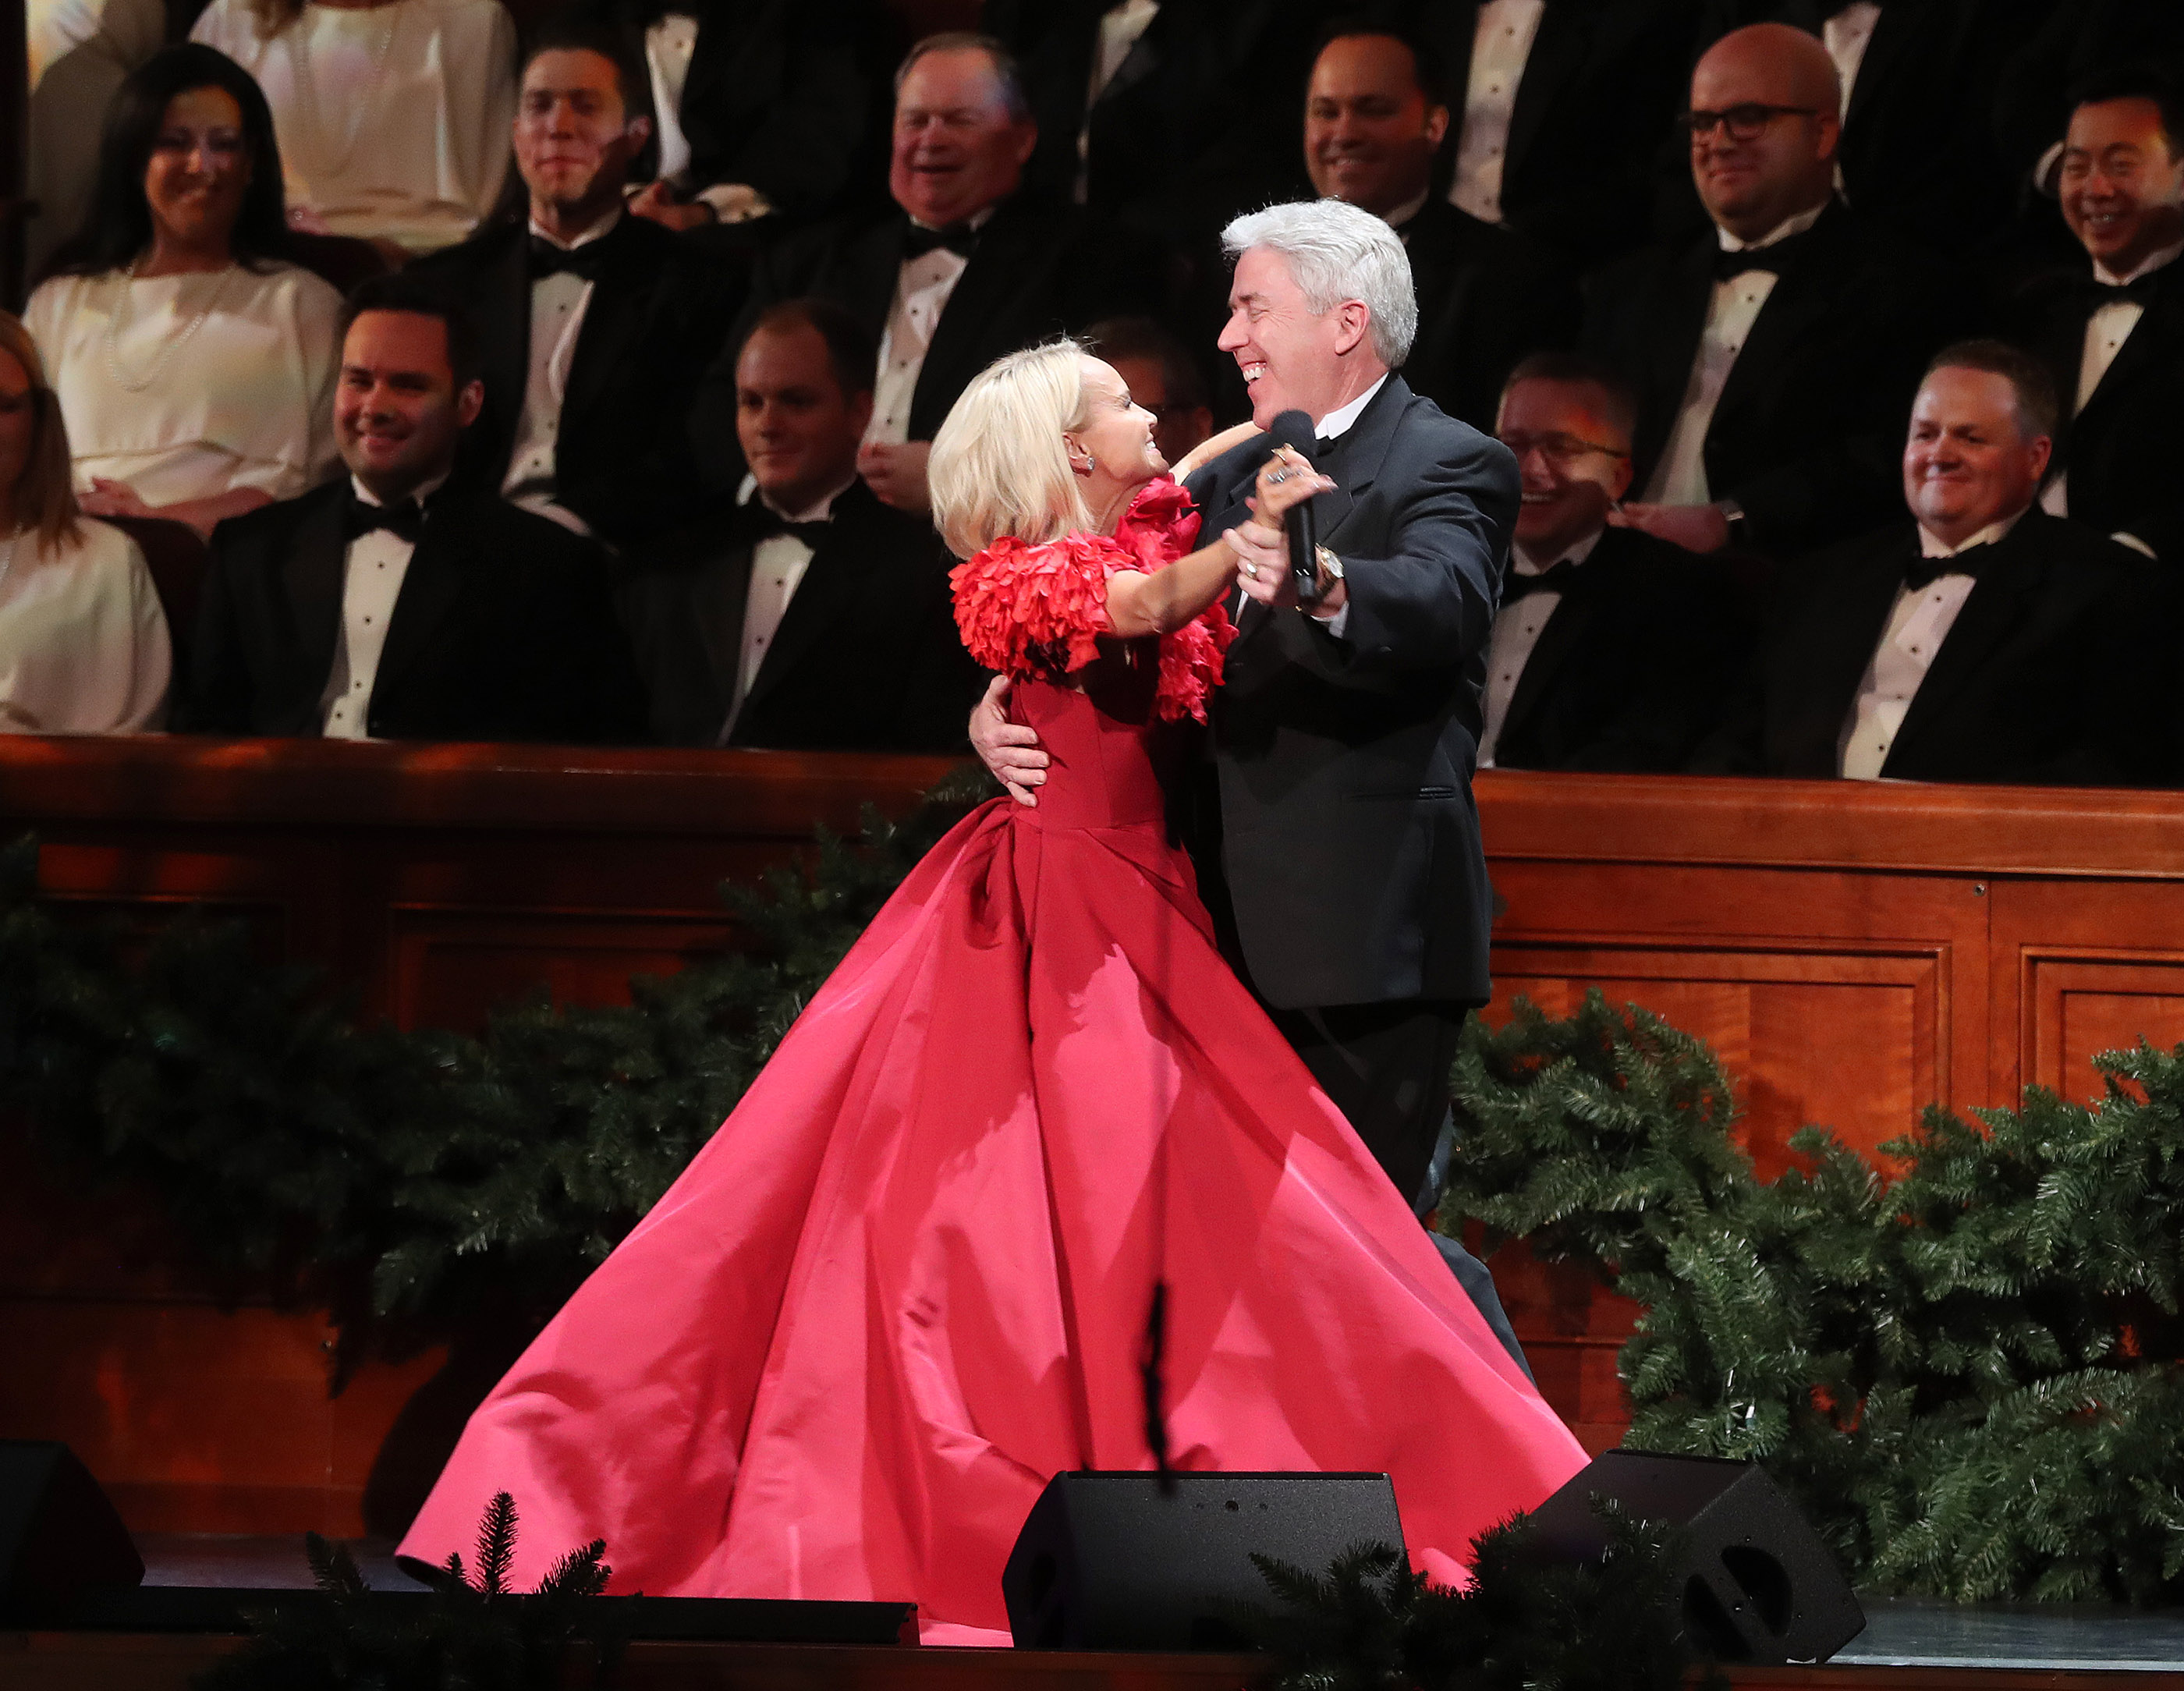 Kristin Chenoweth dances with a choir member while singing with the Tabernacle Choir at Temple Square during their opening Christmas concert at the Conference Center in Salt Lake City on Thursday, Dec. 13, 2018.